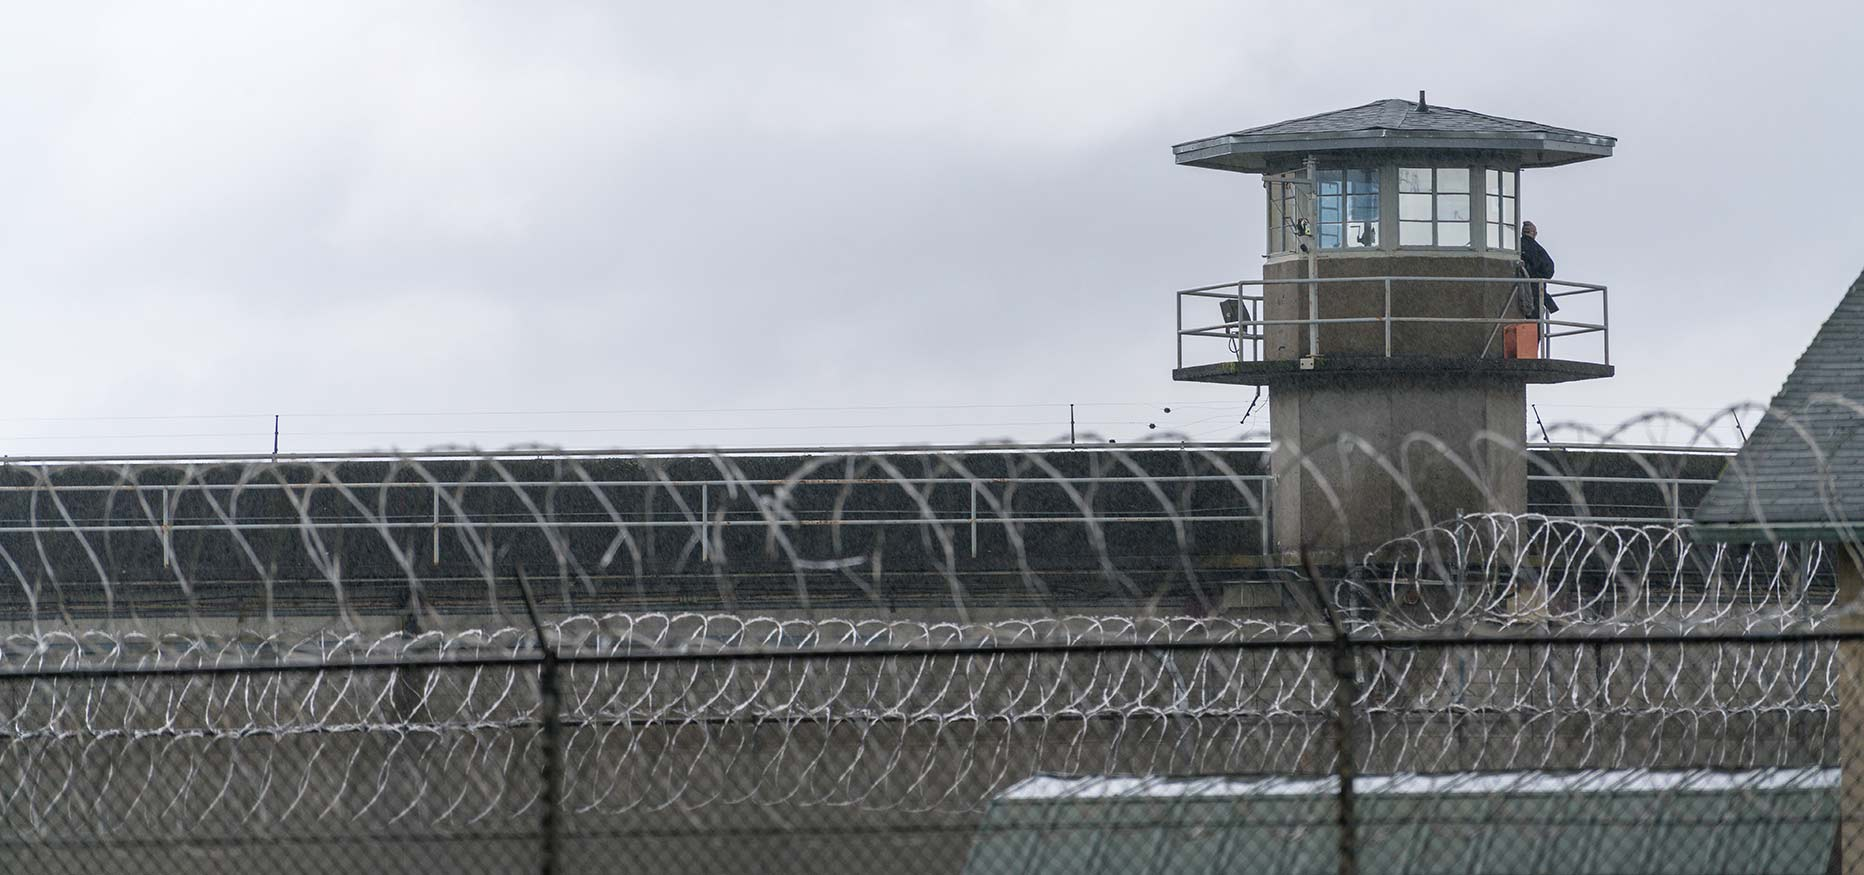 Early Release from Prison in Michigan